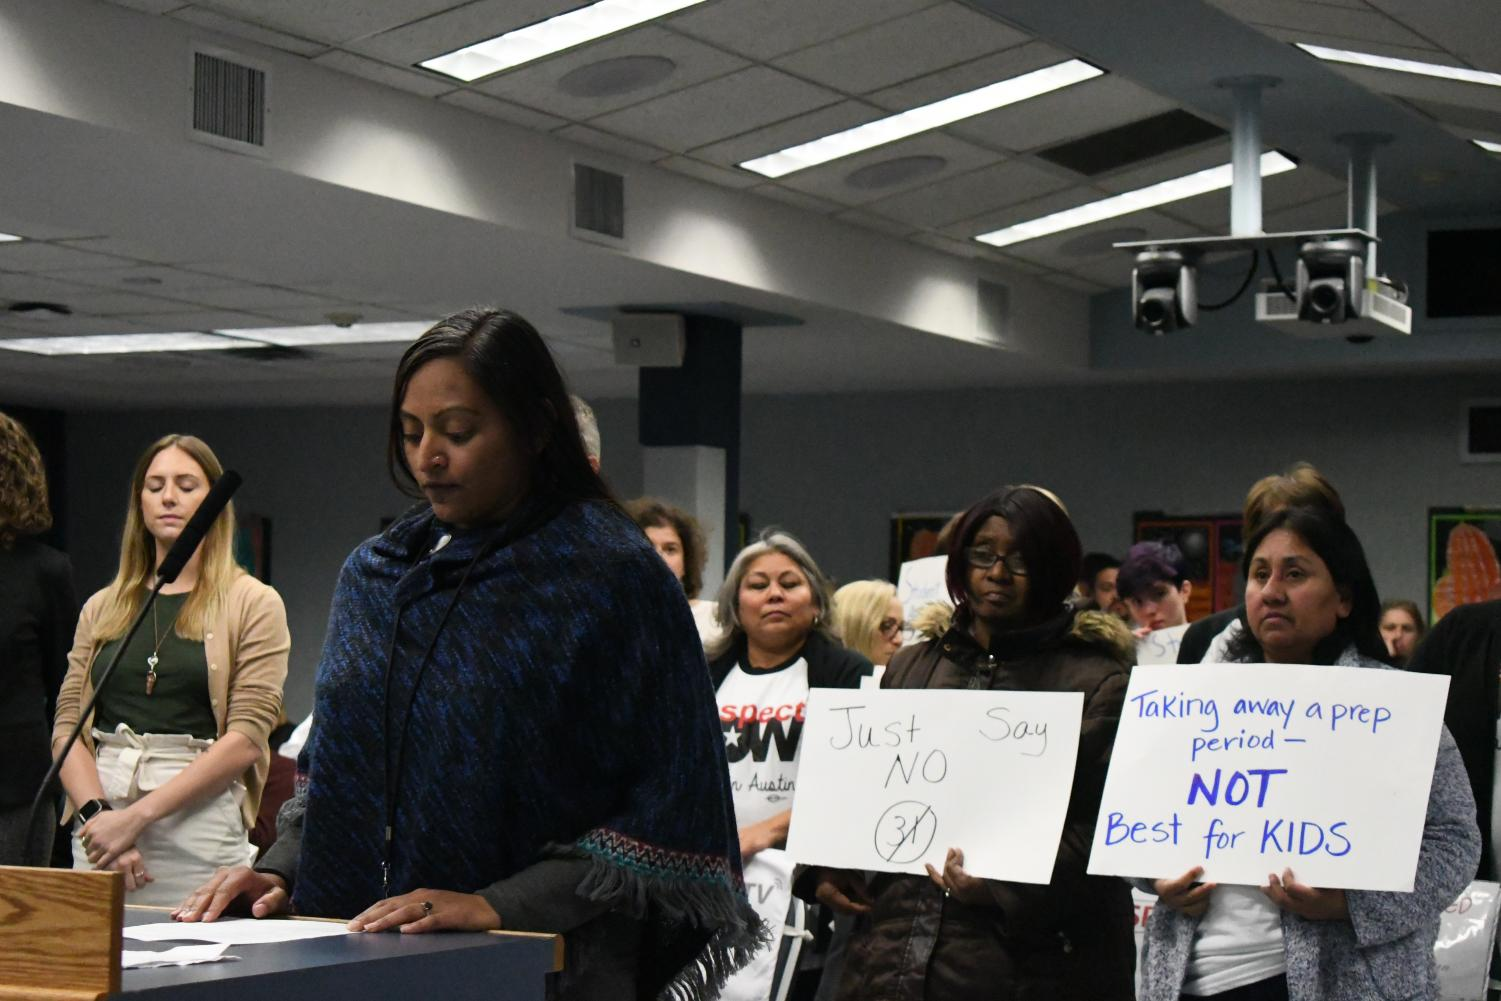 Those in protest of the potential budget for the 2019 school year hold signs during public comments directed at the school board trustees at a Nov. 26 meeting.